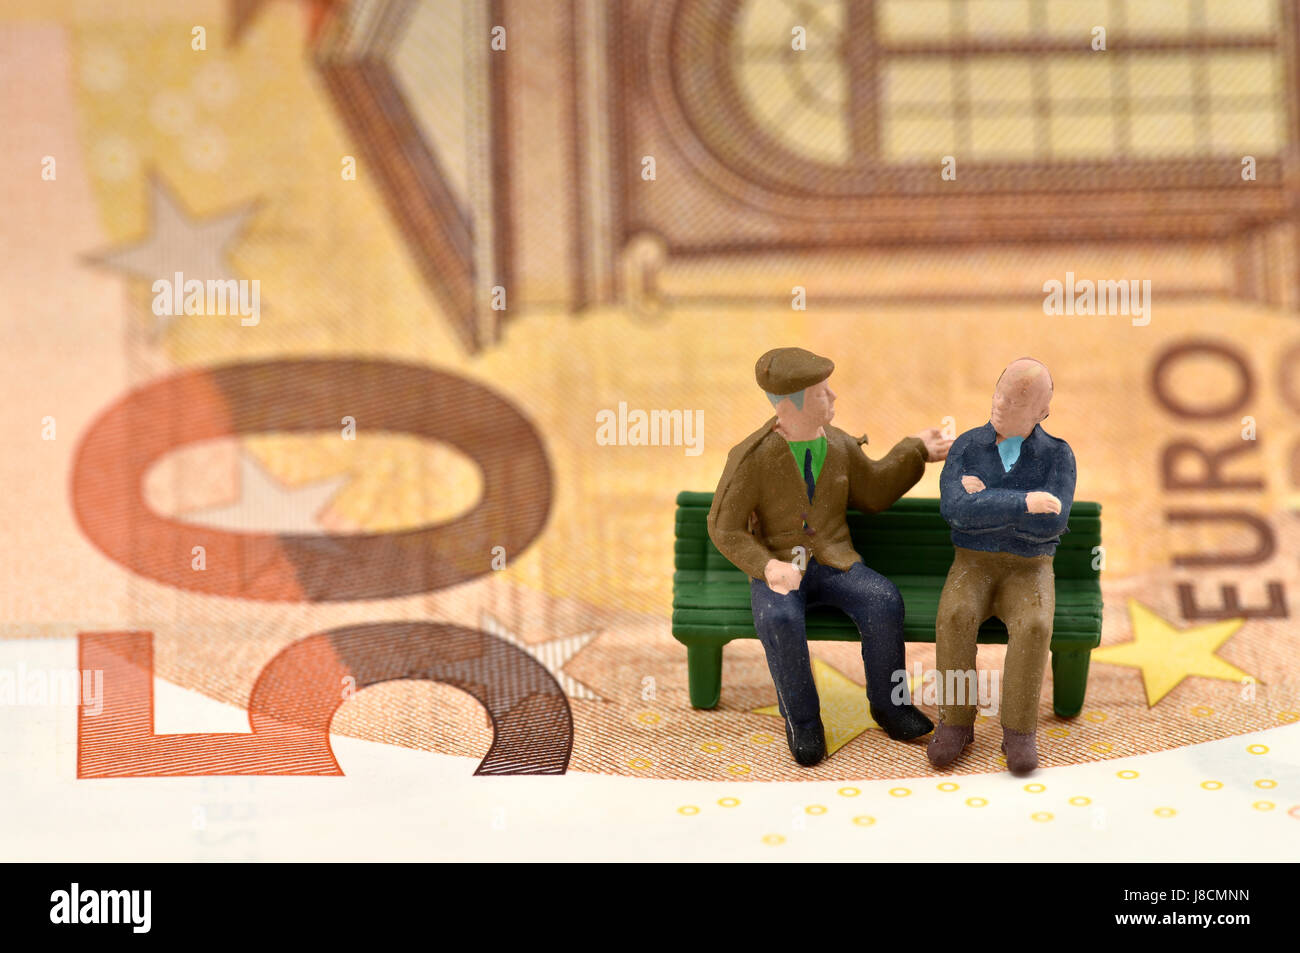 Symbolic image pension, pensioner, long-term care insurance, private and state provisions, bank notes, euro - Stock Image